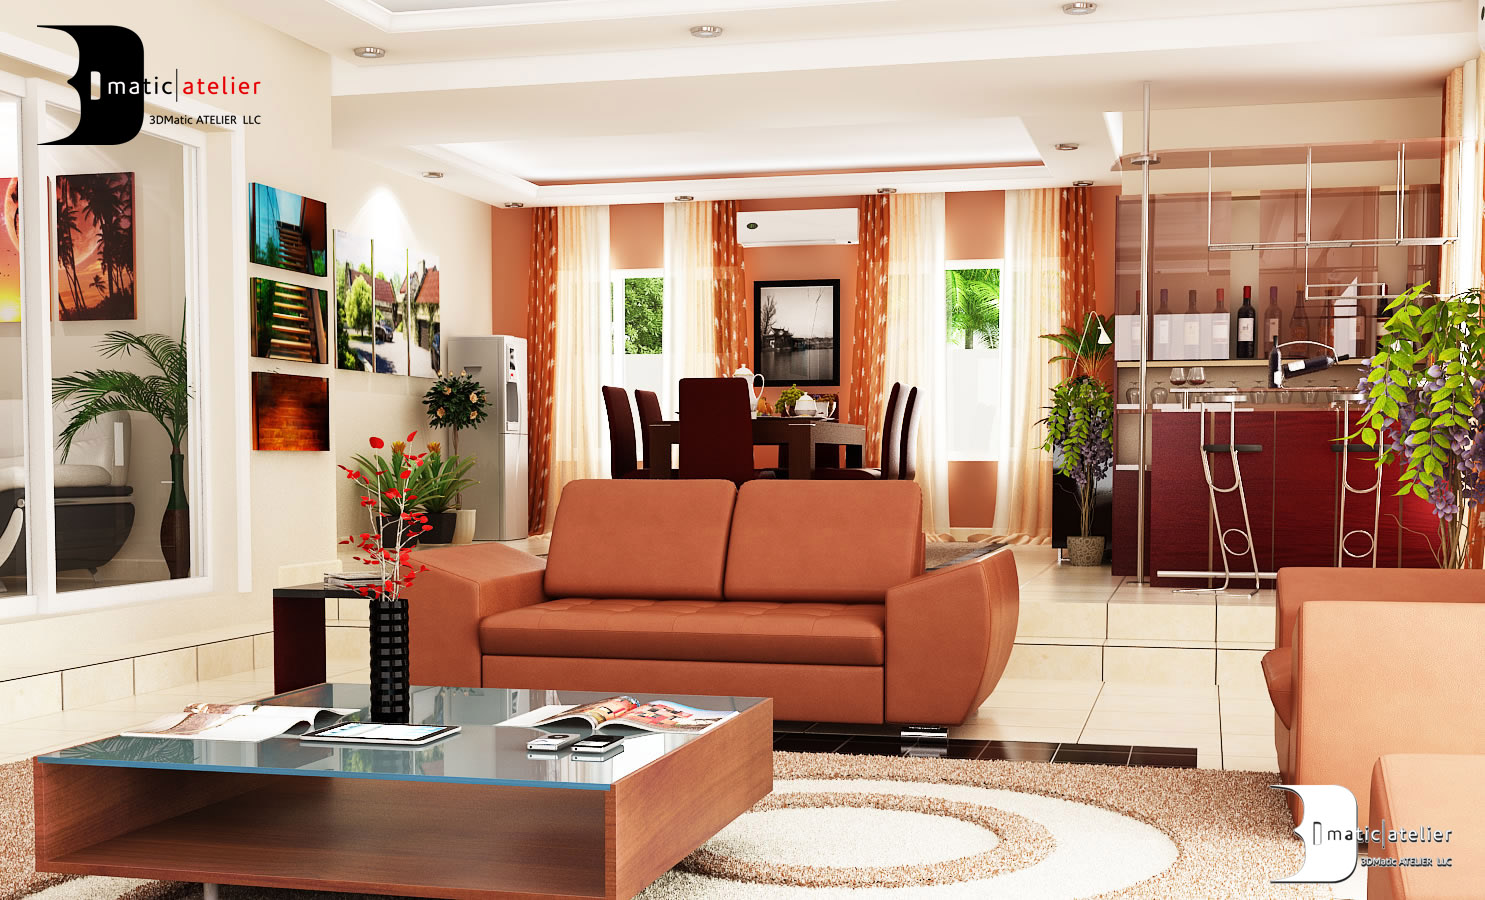 Interior design lekki nigeria by olamidun akinde at for Interior decoration nigeria